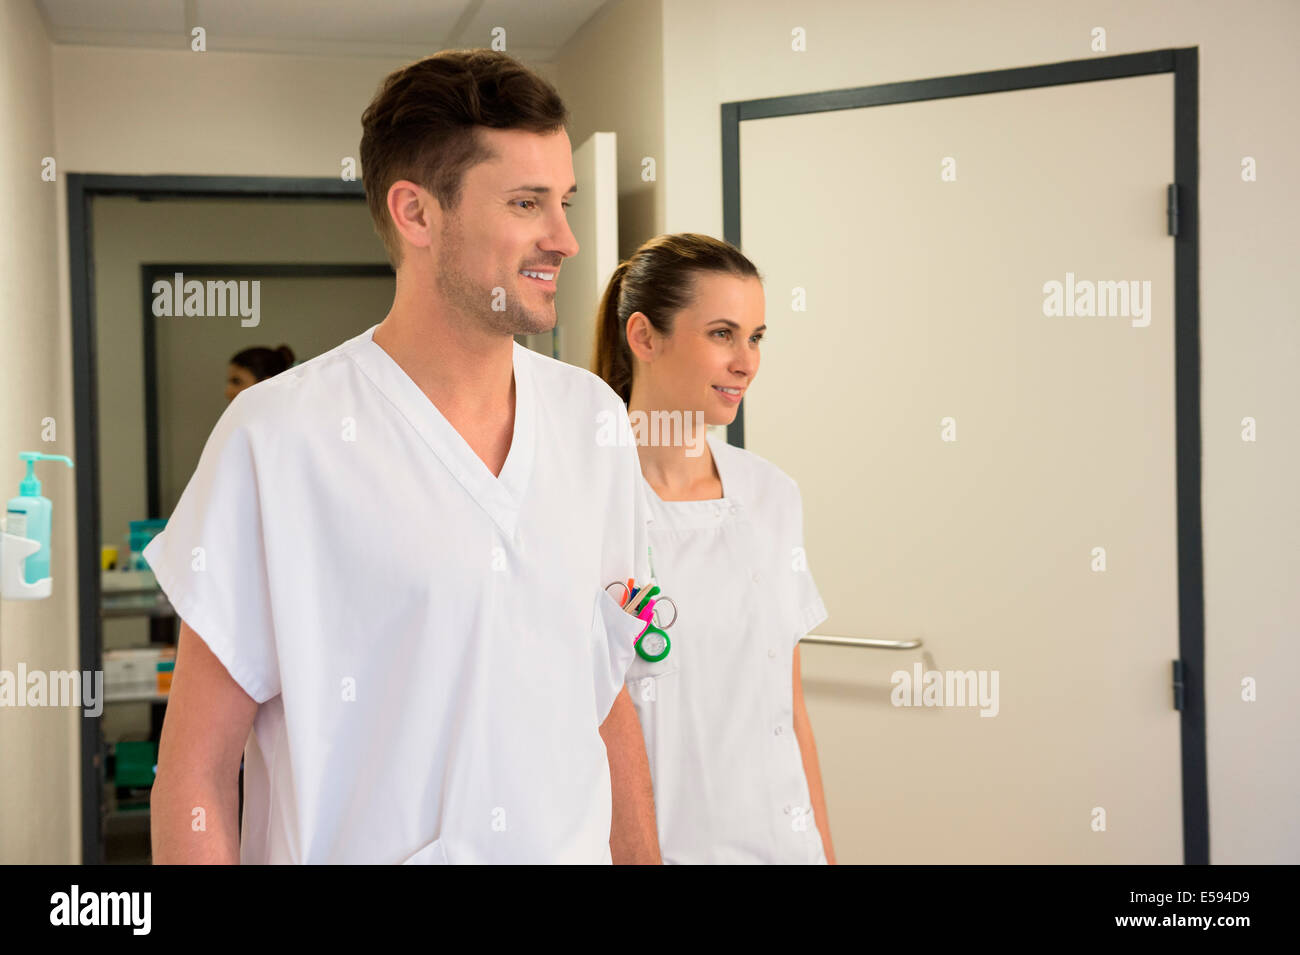 Doctor and nurse in a hospital corridor - Stock Image